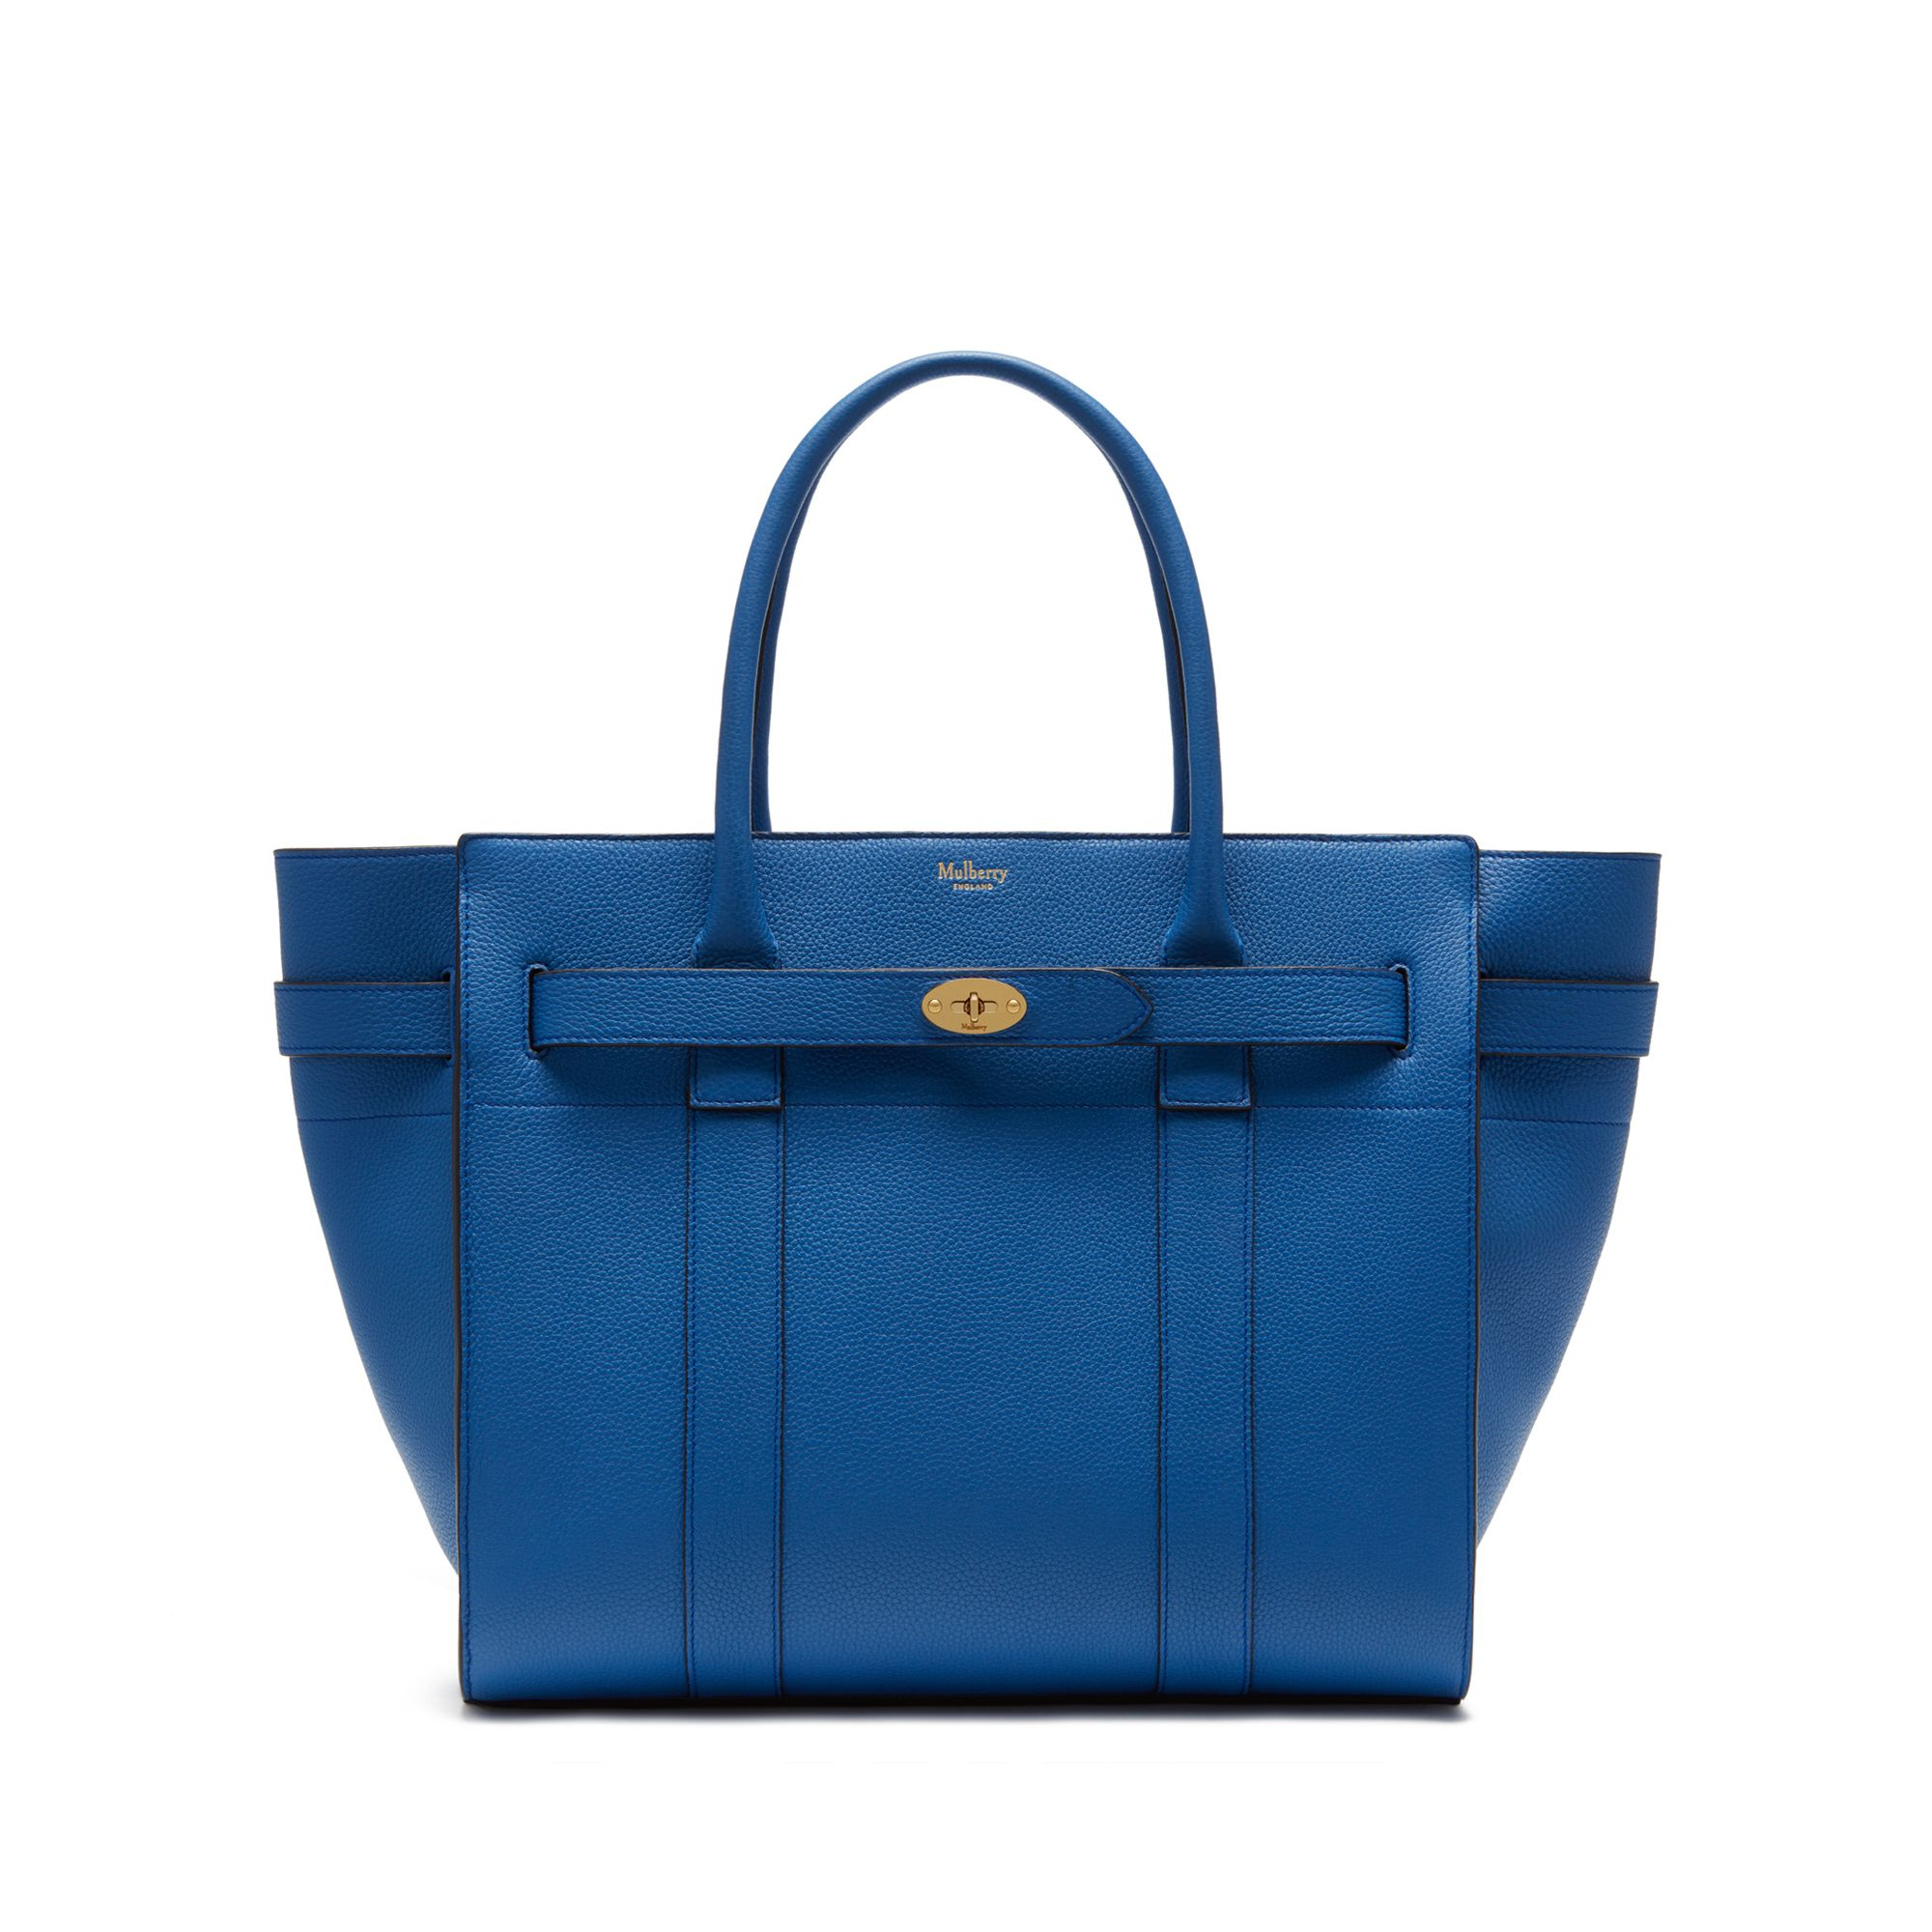 abb66080726 Mulberry Zipped Bayswater in Porcelain Blue - Meghan s Mirror